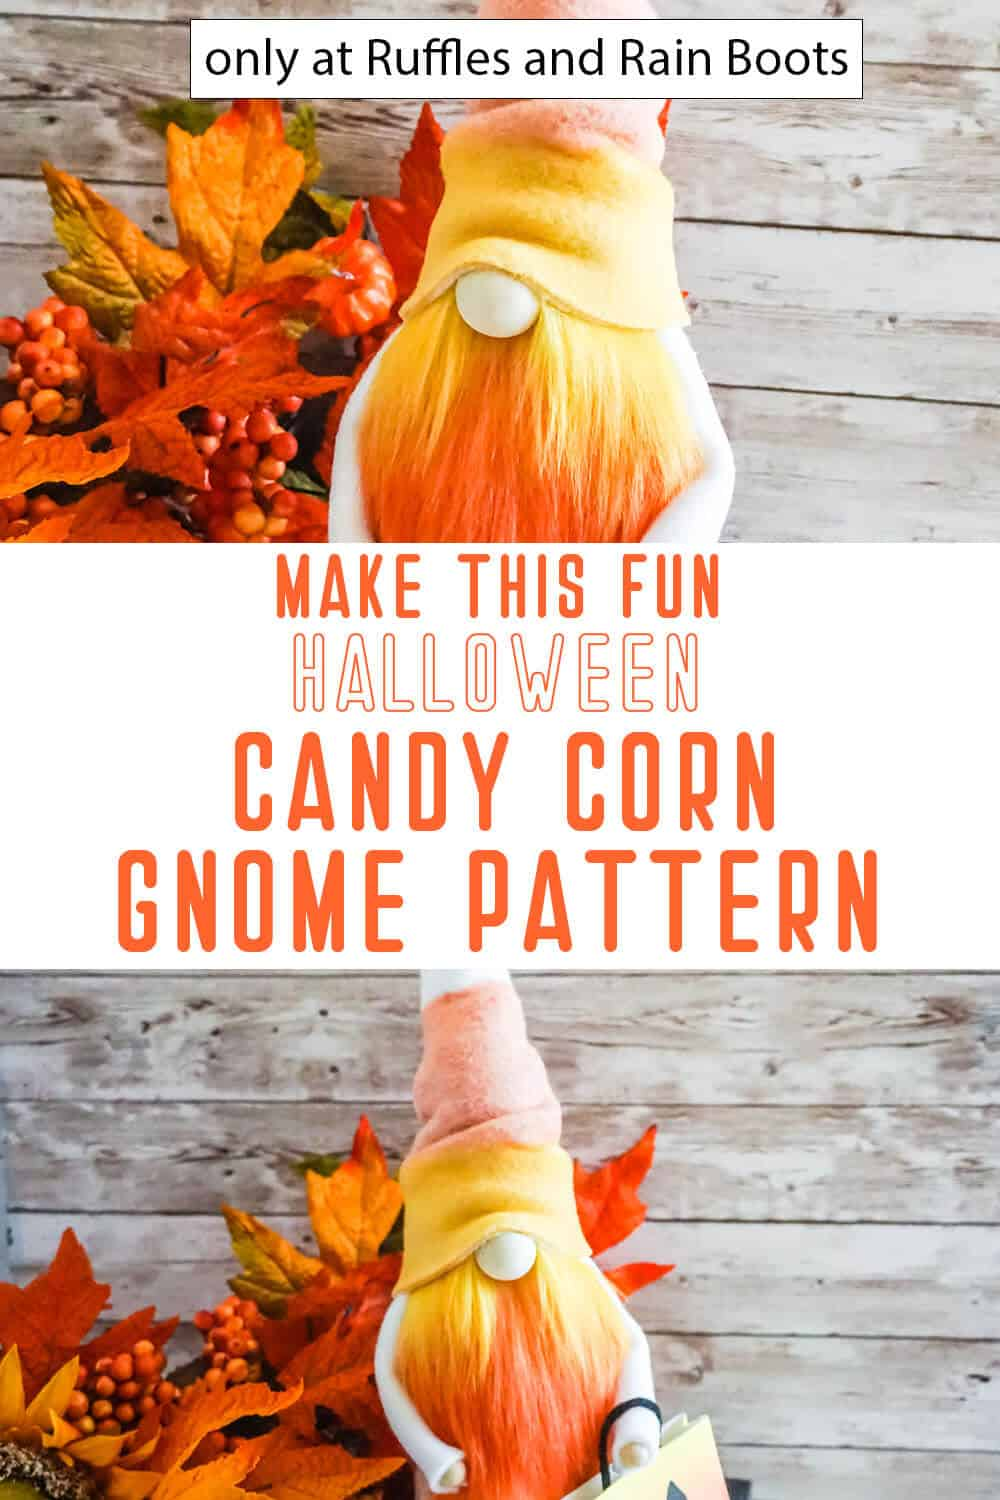 photo collage of candy corn gnome pattern for halloween gnome with text which reads make this fun halloween candy corn gnome pattern